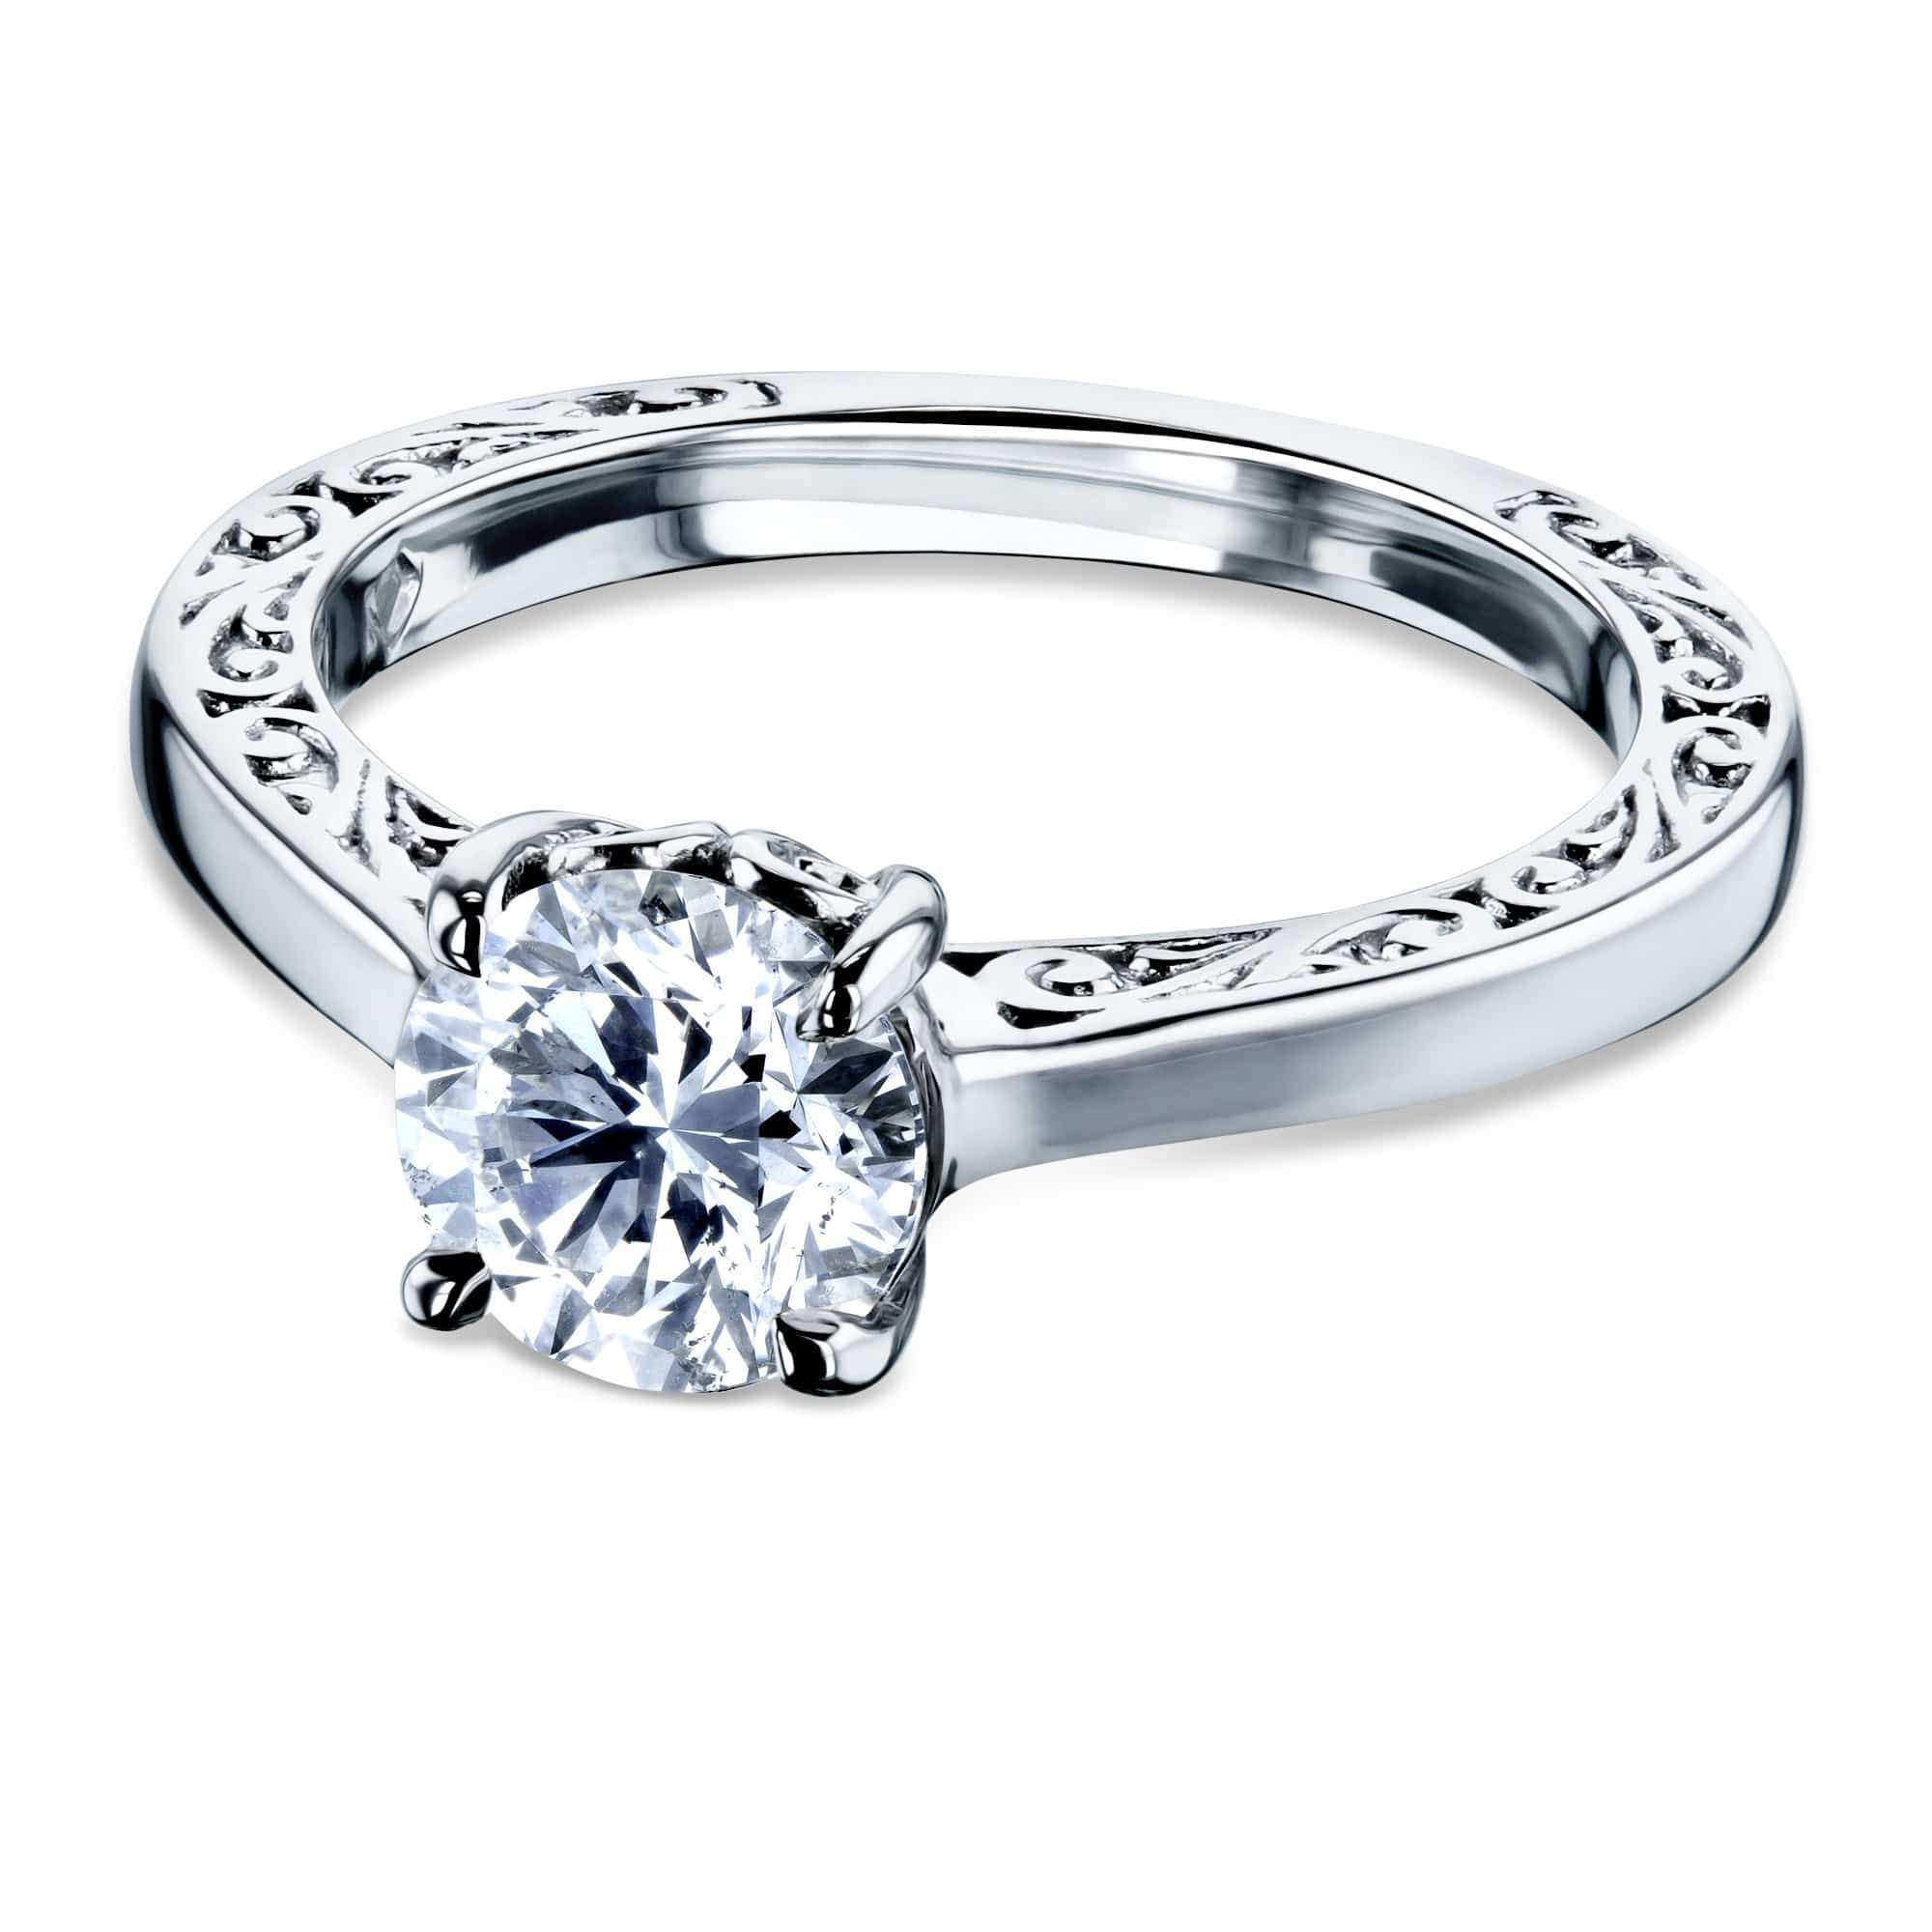 Discounts 1ct Diamond Solitaire Filigree Engraved Ring - white-gold 10